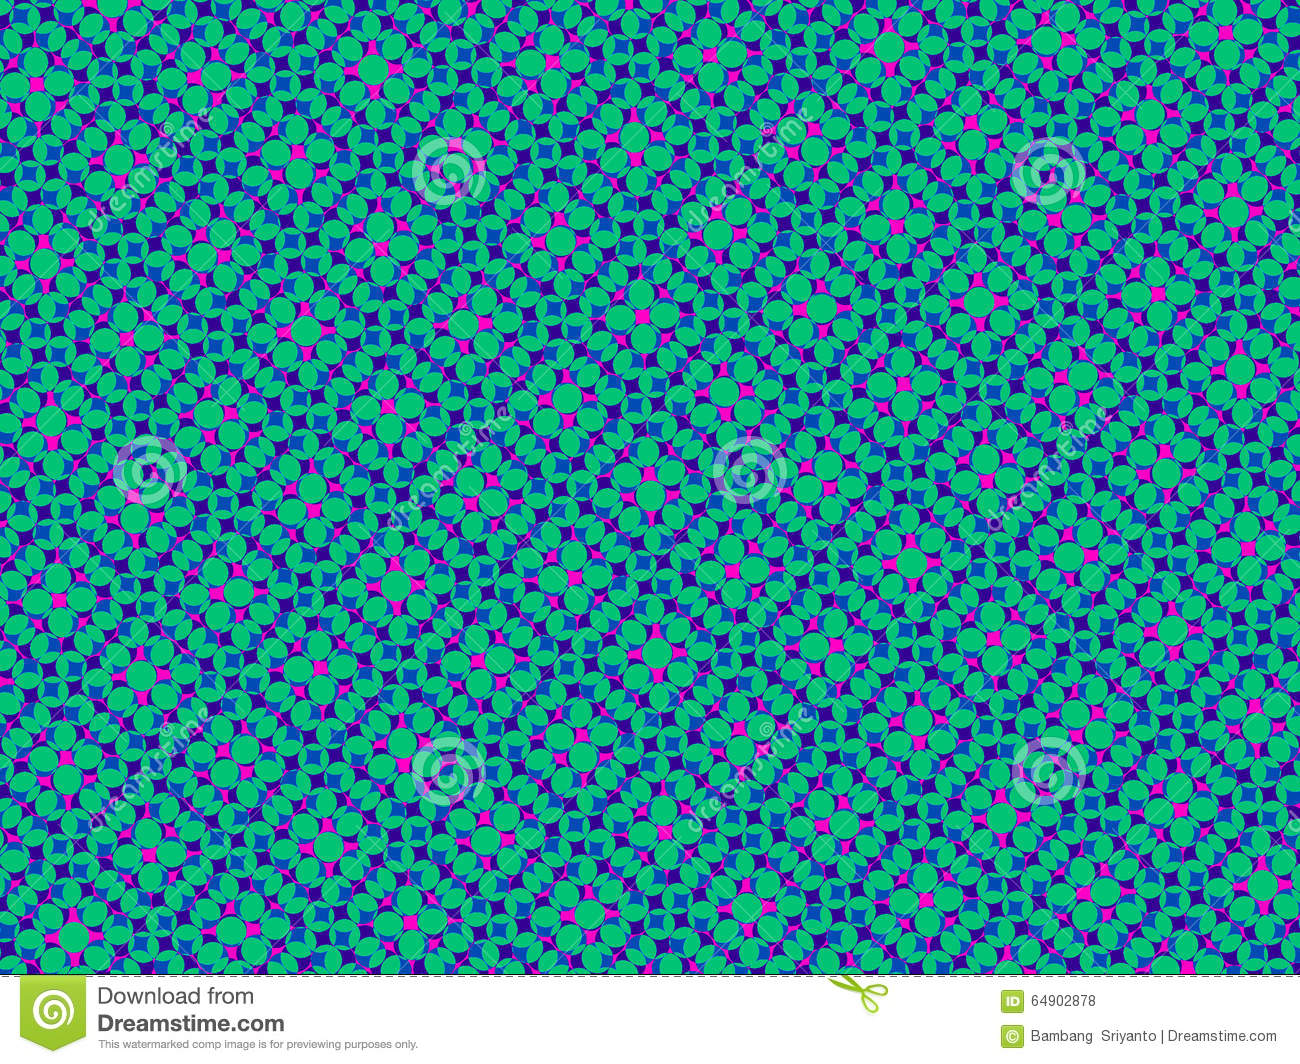 Abstract Stock Photo Image 64902878